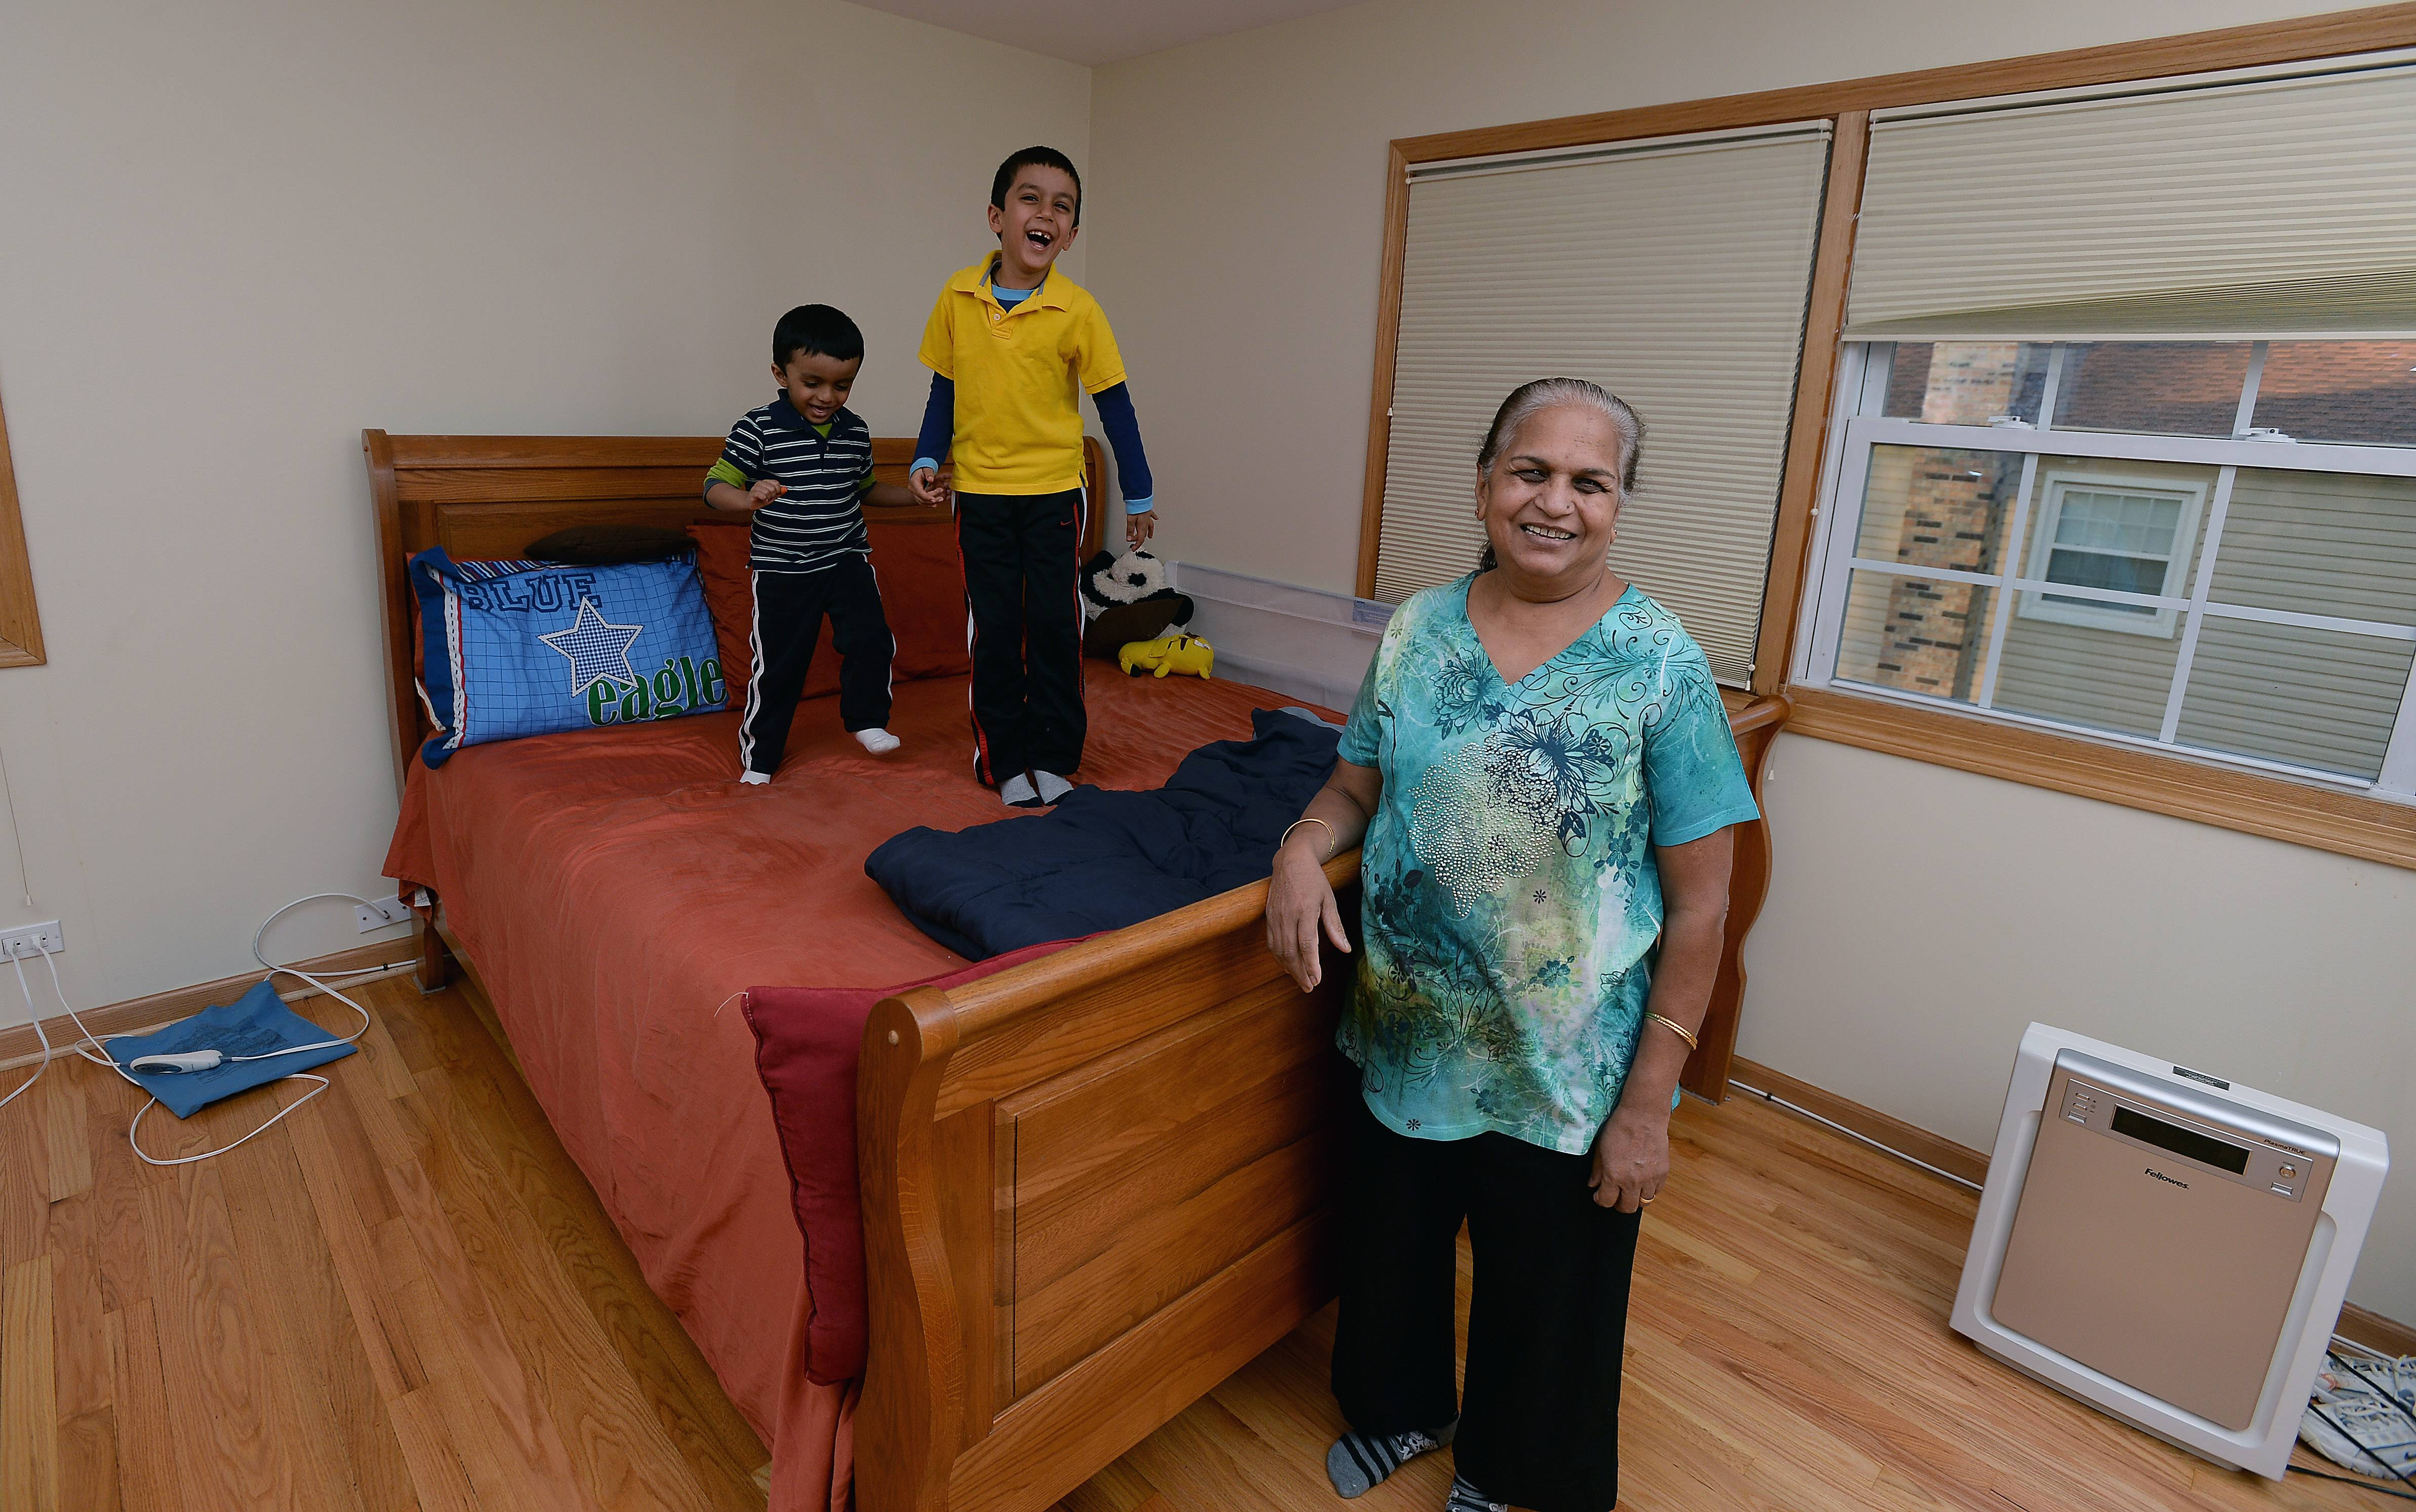 Lili Patel of Mount Prospect enjoys living with and helping to care for her grandchildren,  Raveen, 6, and Jushnn, 4